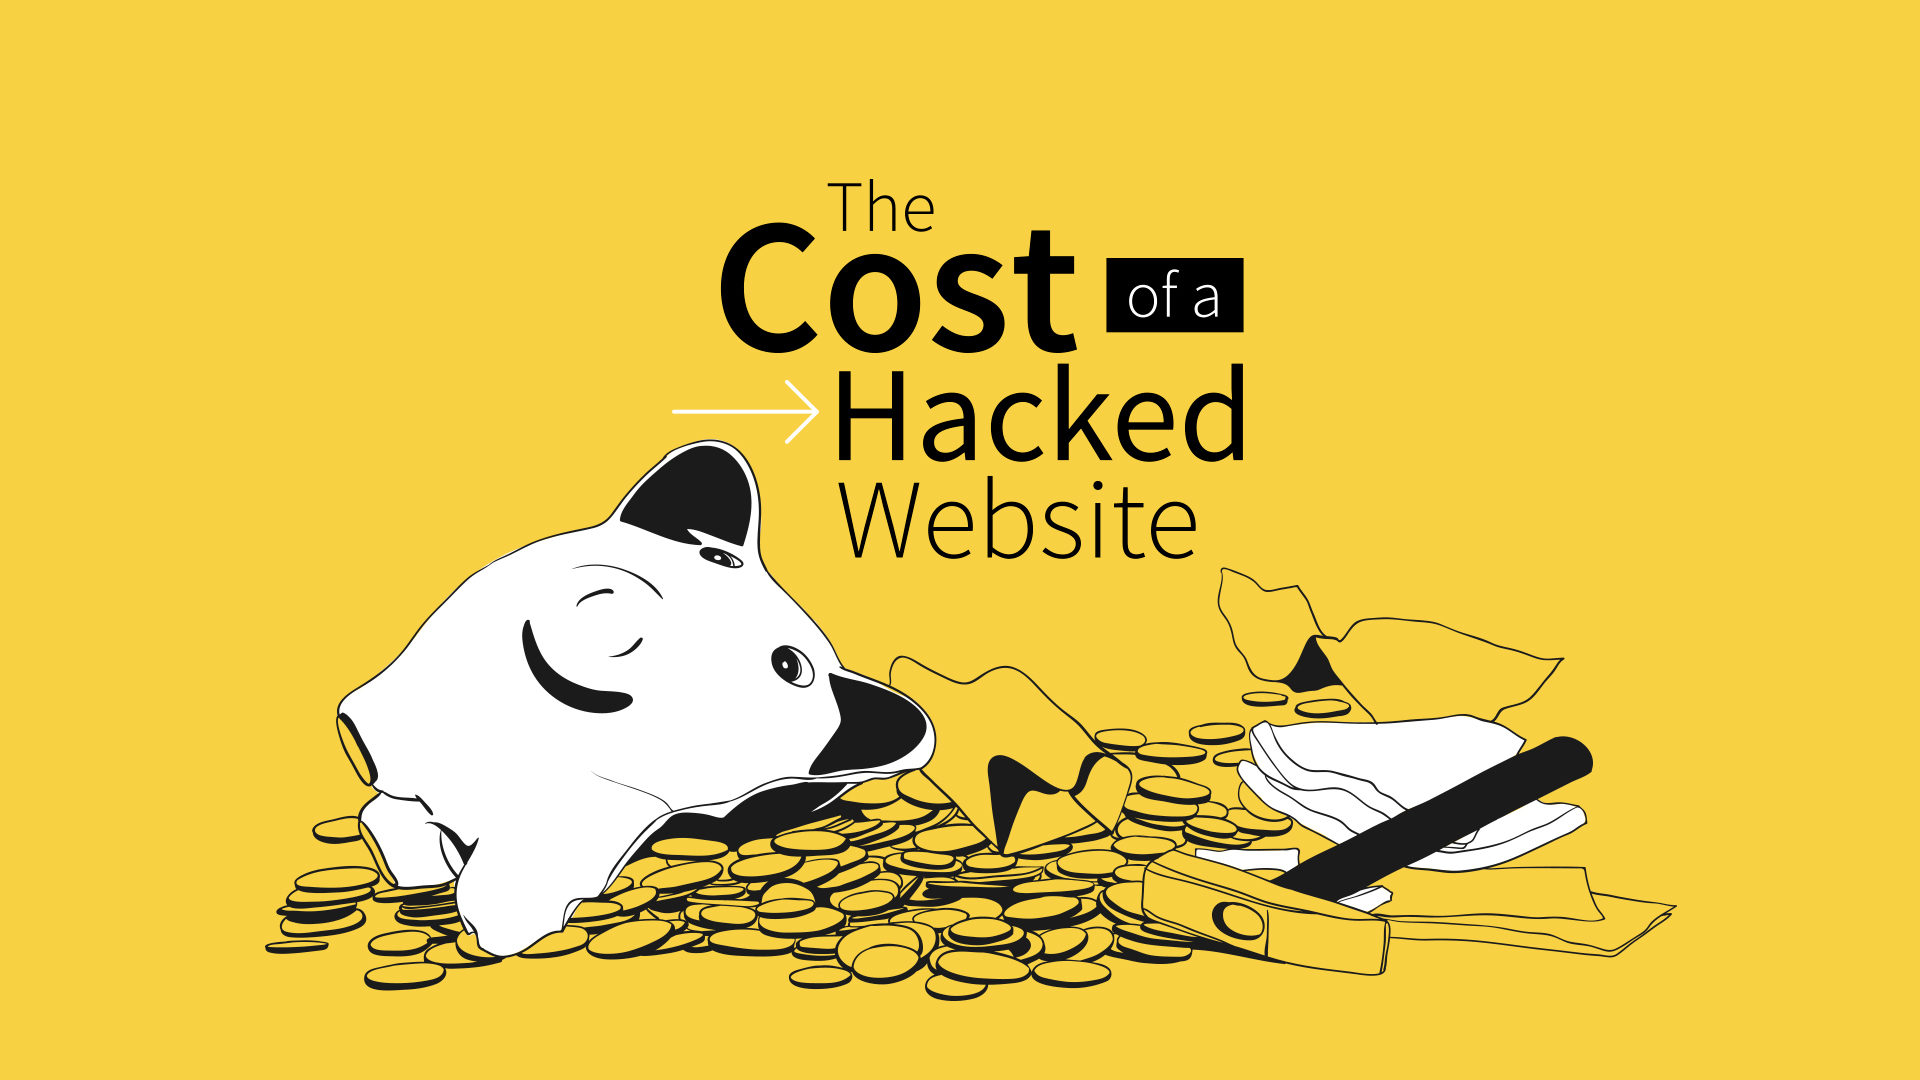 The Cost of a Hacked Website